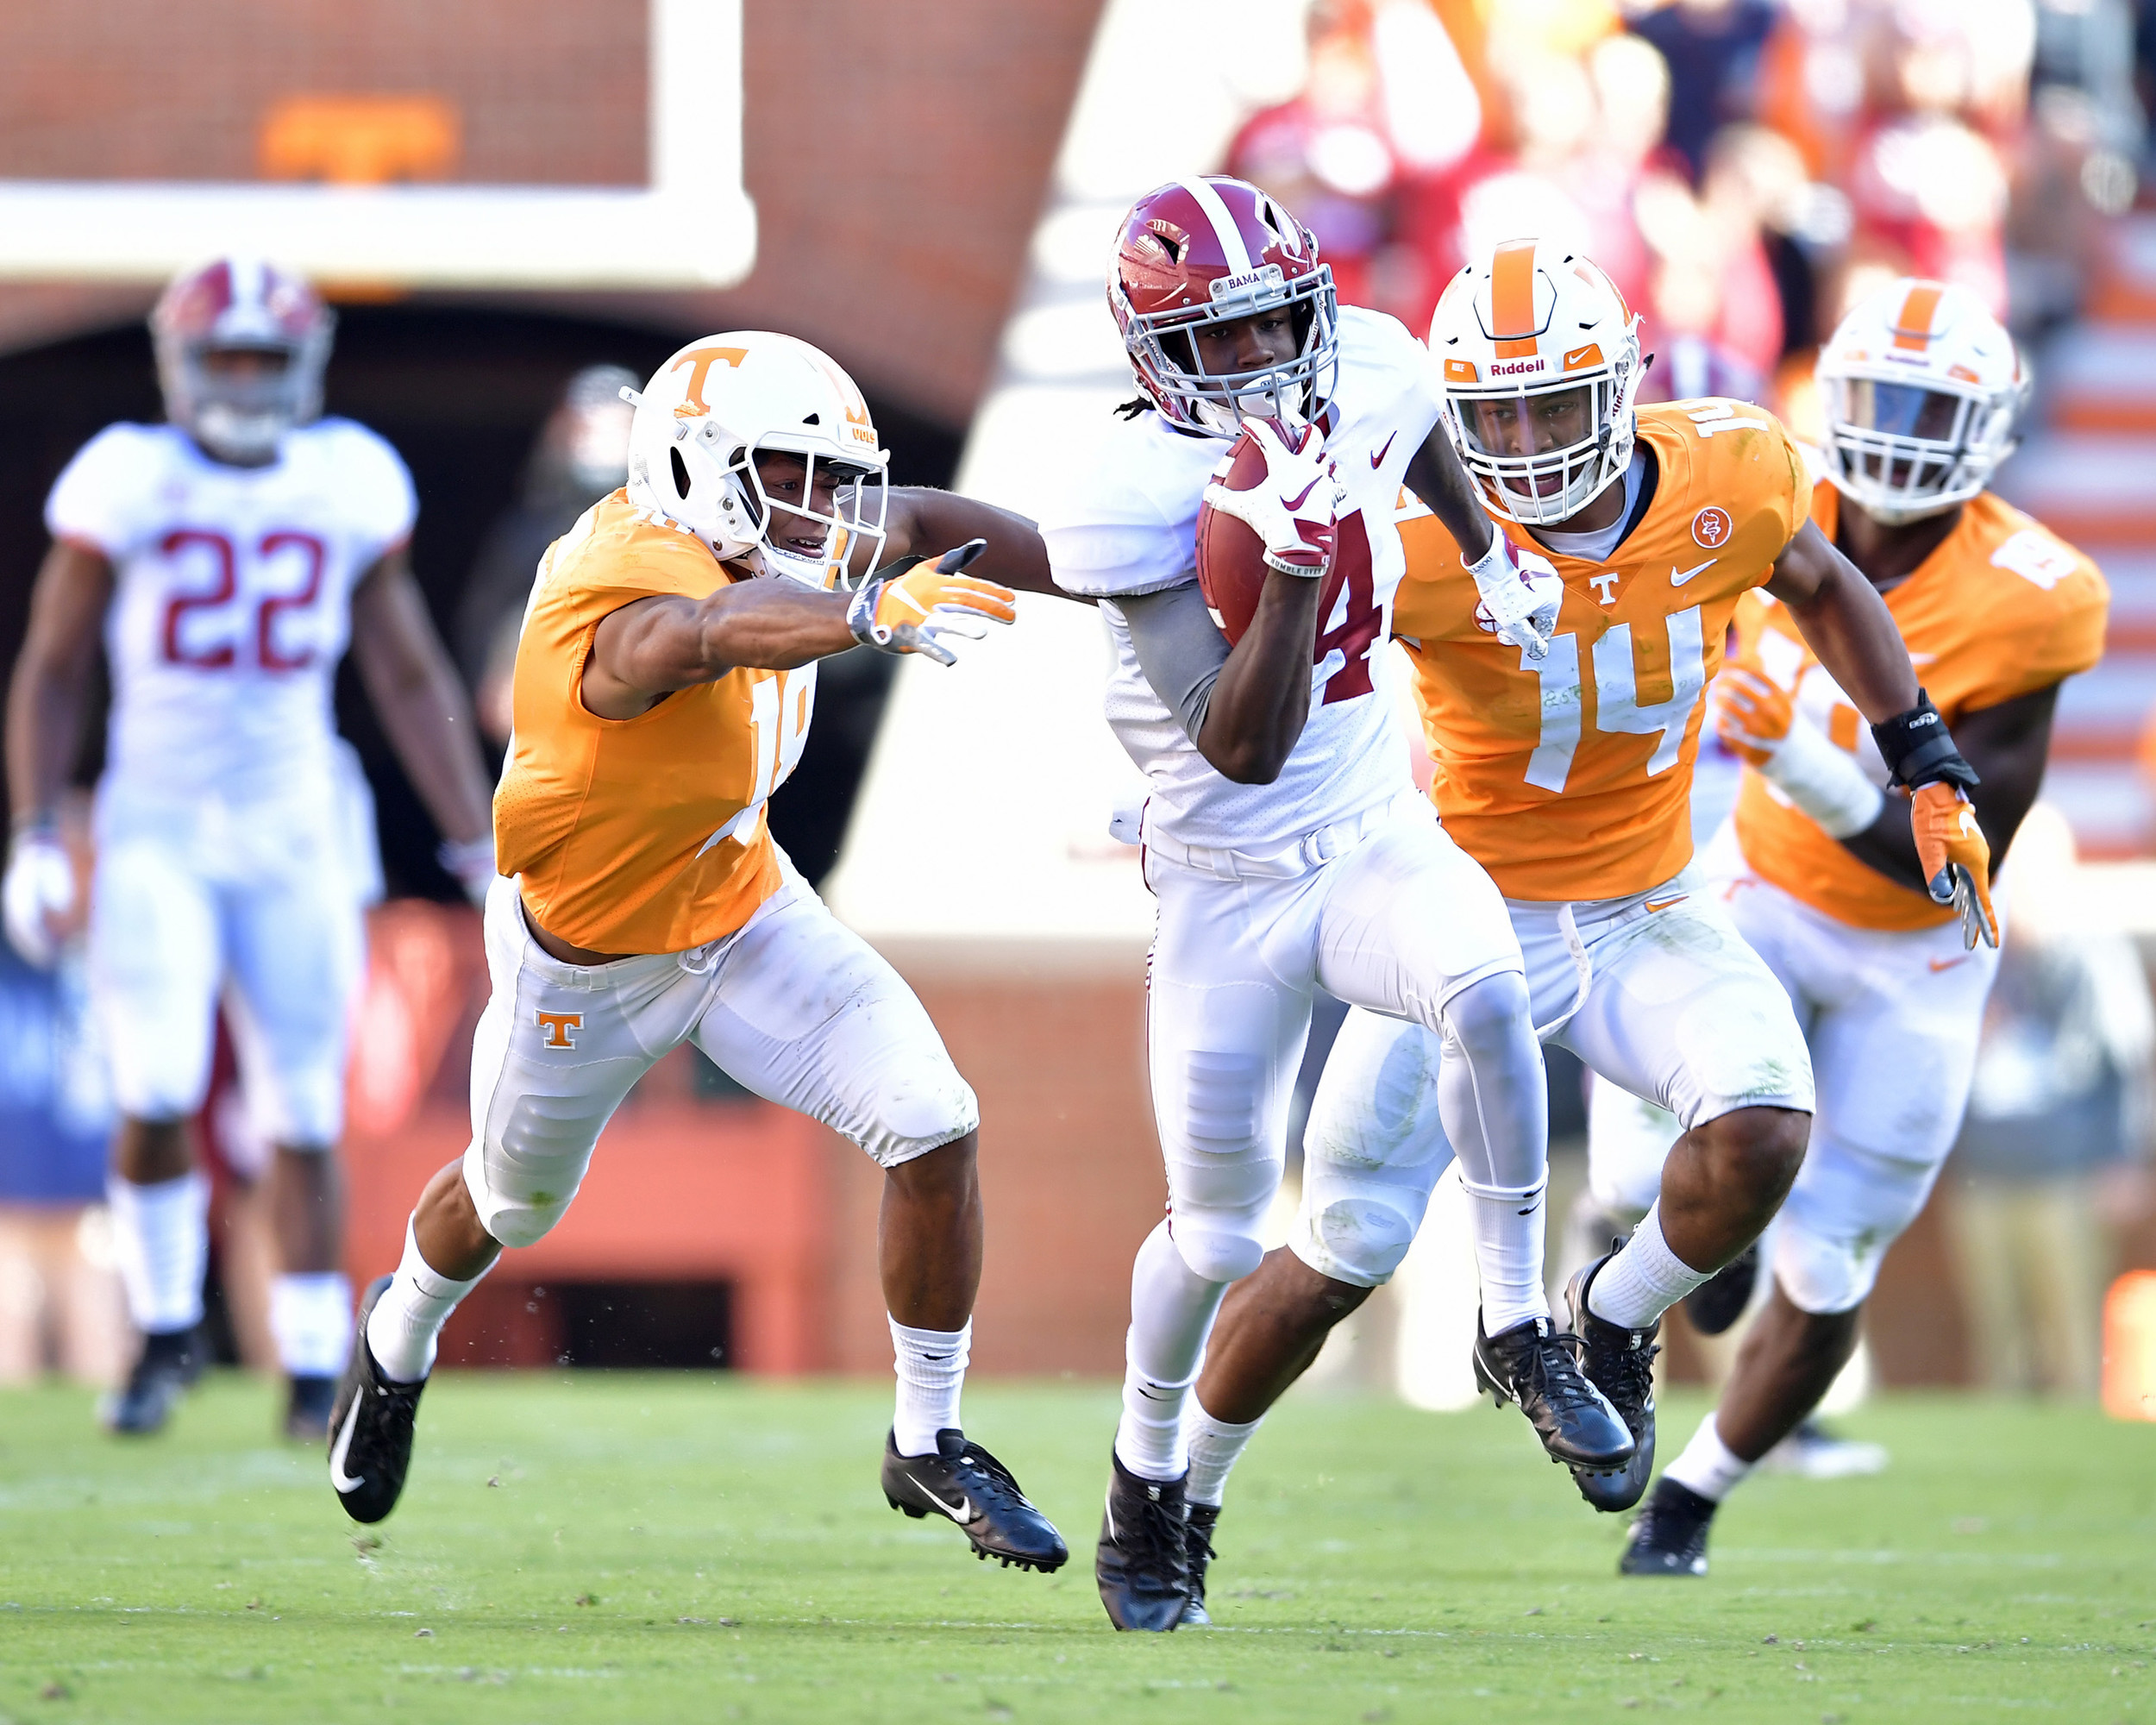 Alabama Crimson Tide wide receiver Jerry Jeudy adds yards after the reception for a first down during the first half of the Alabama at Tennessee NCAA football game on Saturday, Oct. 20, 2018, at Neyland Stadium in Knoxville. Tenn. Alabama wins 58-21. (Photo by Lee Walls)